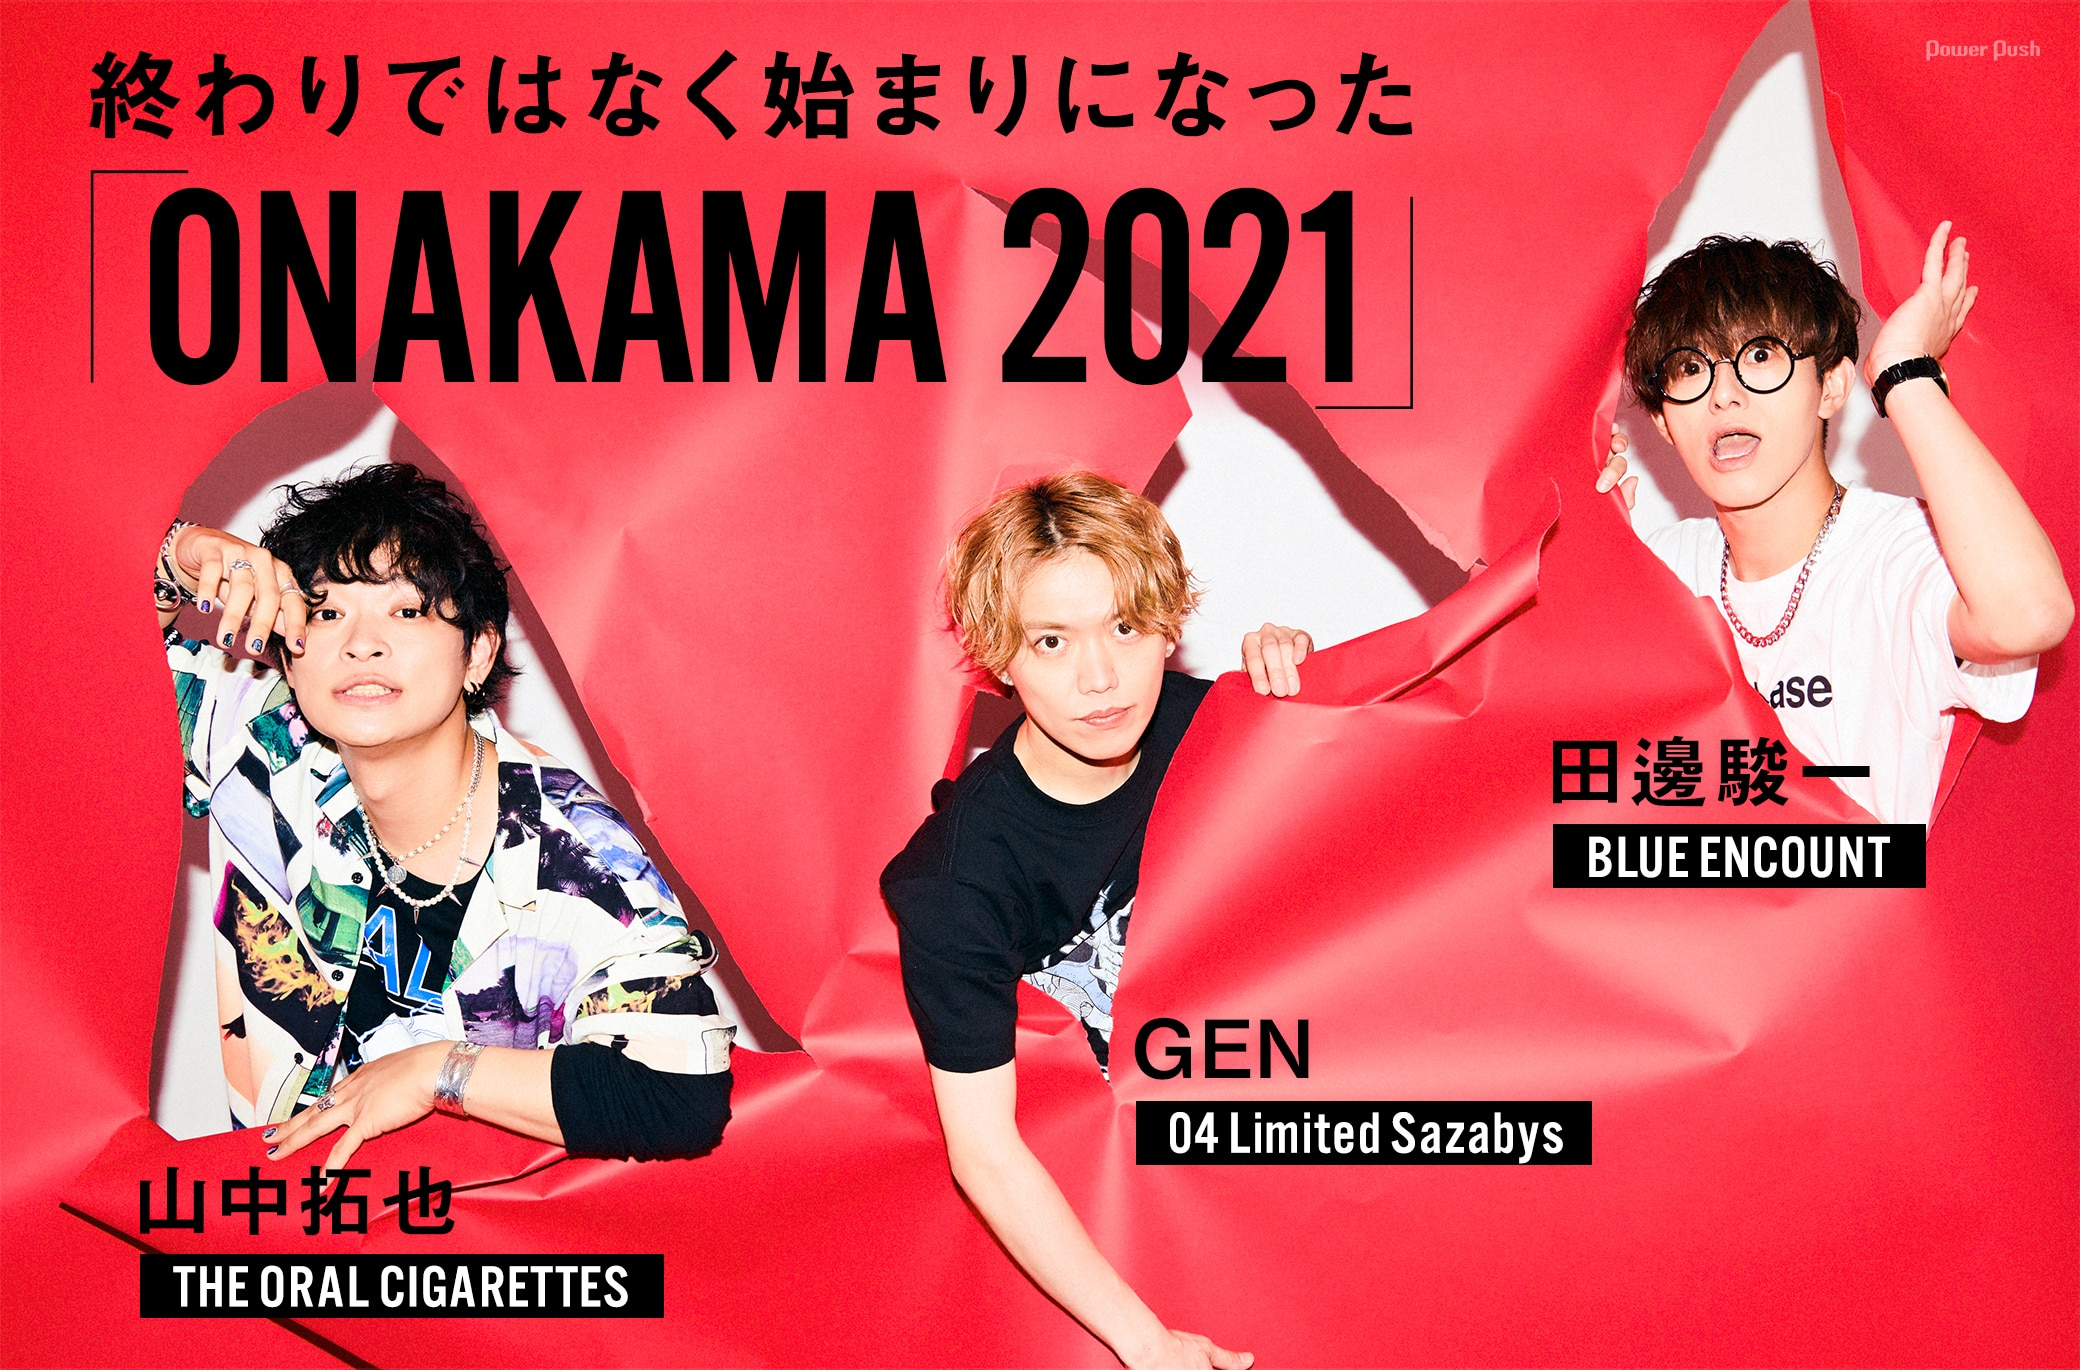 GEN(04 Limited Sazabys)山中拓也(THE ORAL CIGARETTES)田邊駿一(BLUE ENCOUNT)|終わりではなく始まりになった「ONAKAMA2021」